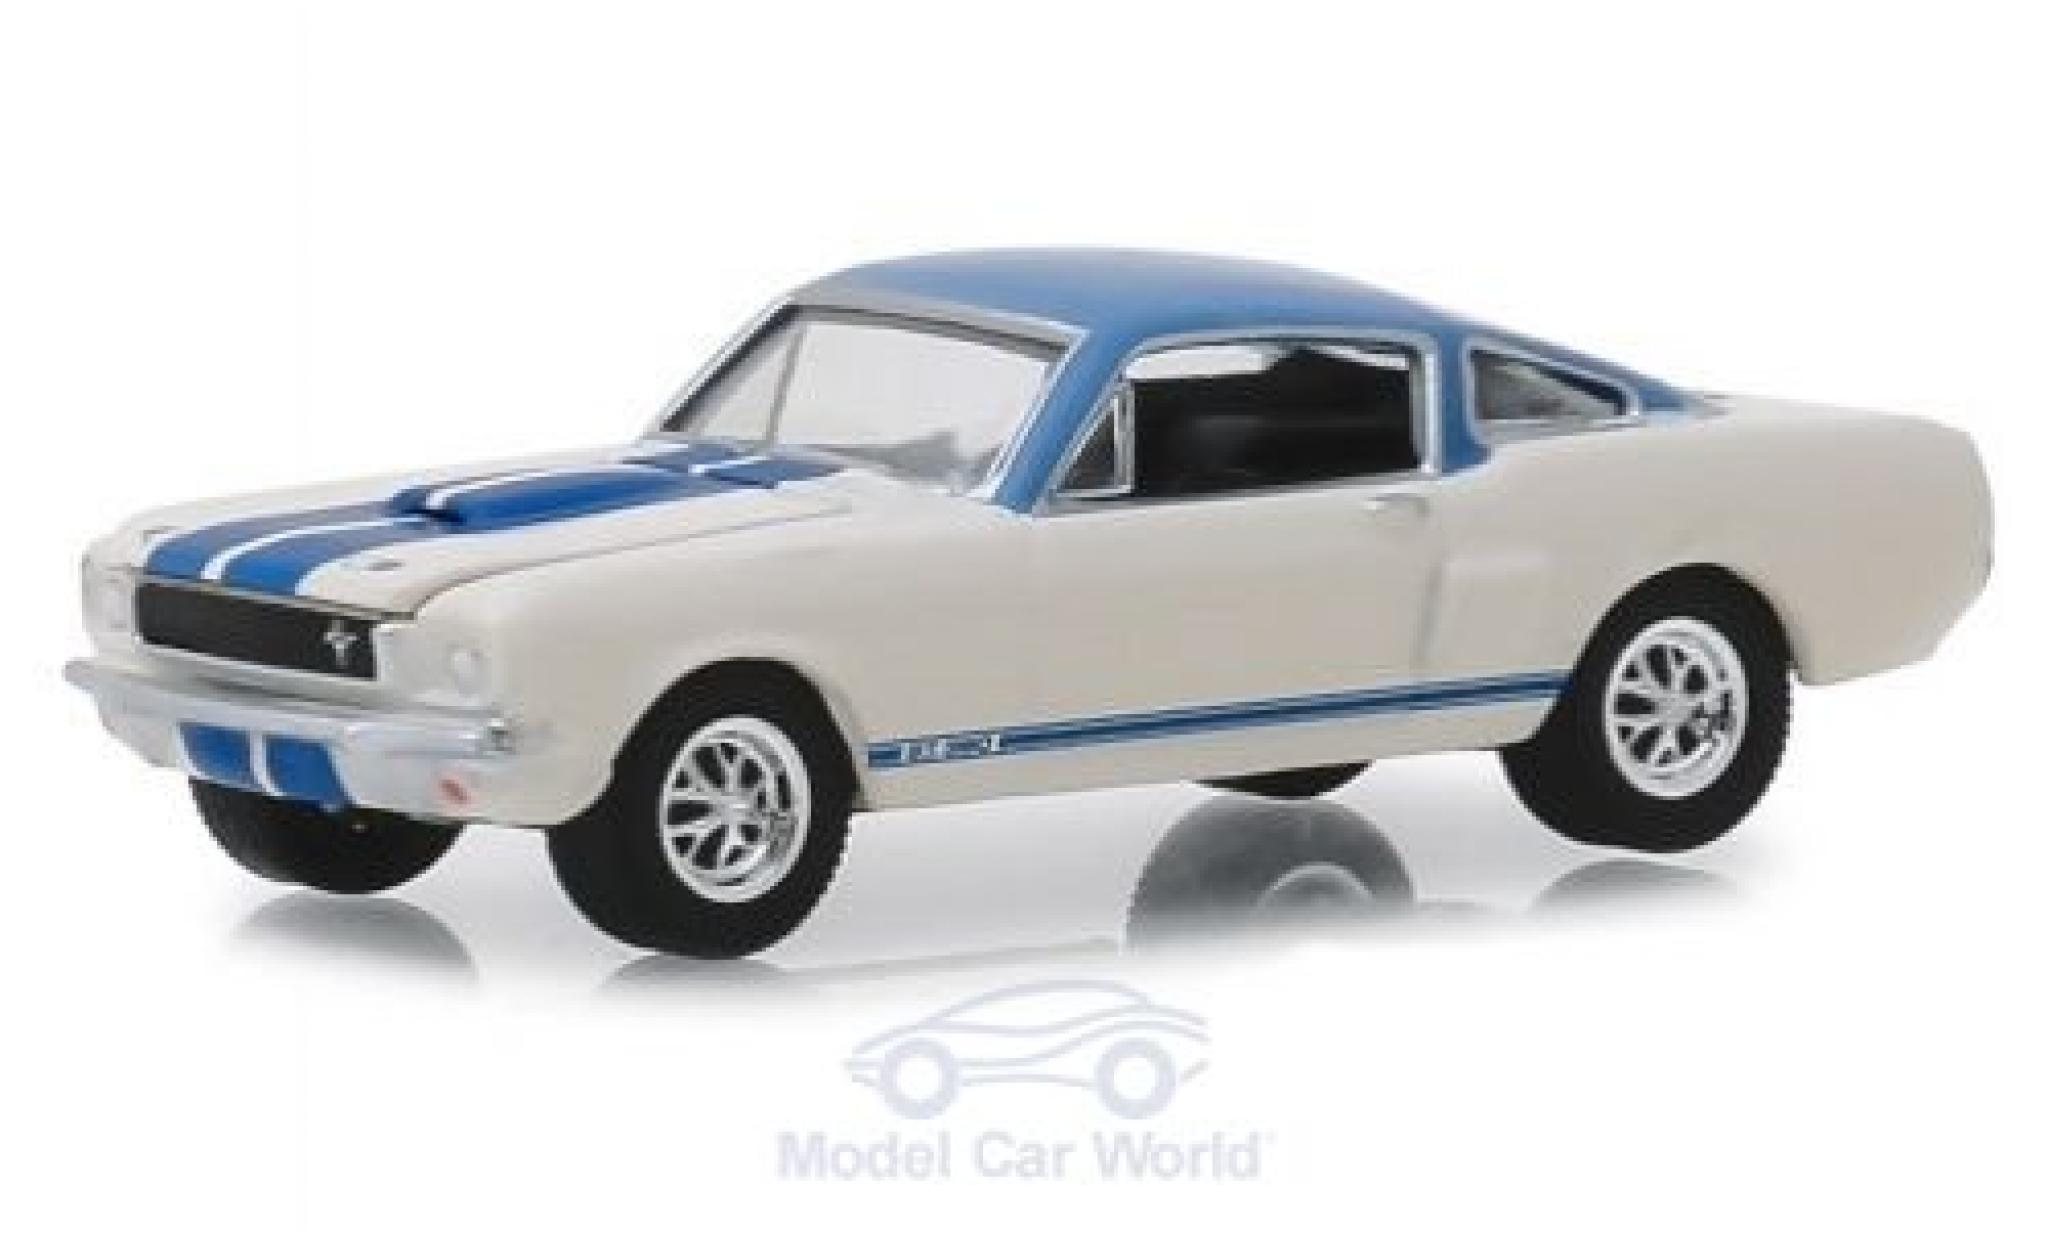 Ford Mustang GT 1/64 Greenlight Shelby 350 Prototype weiss/blau 1966